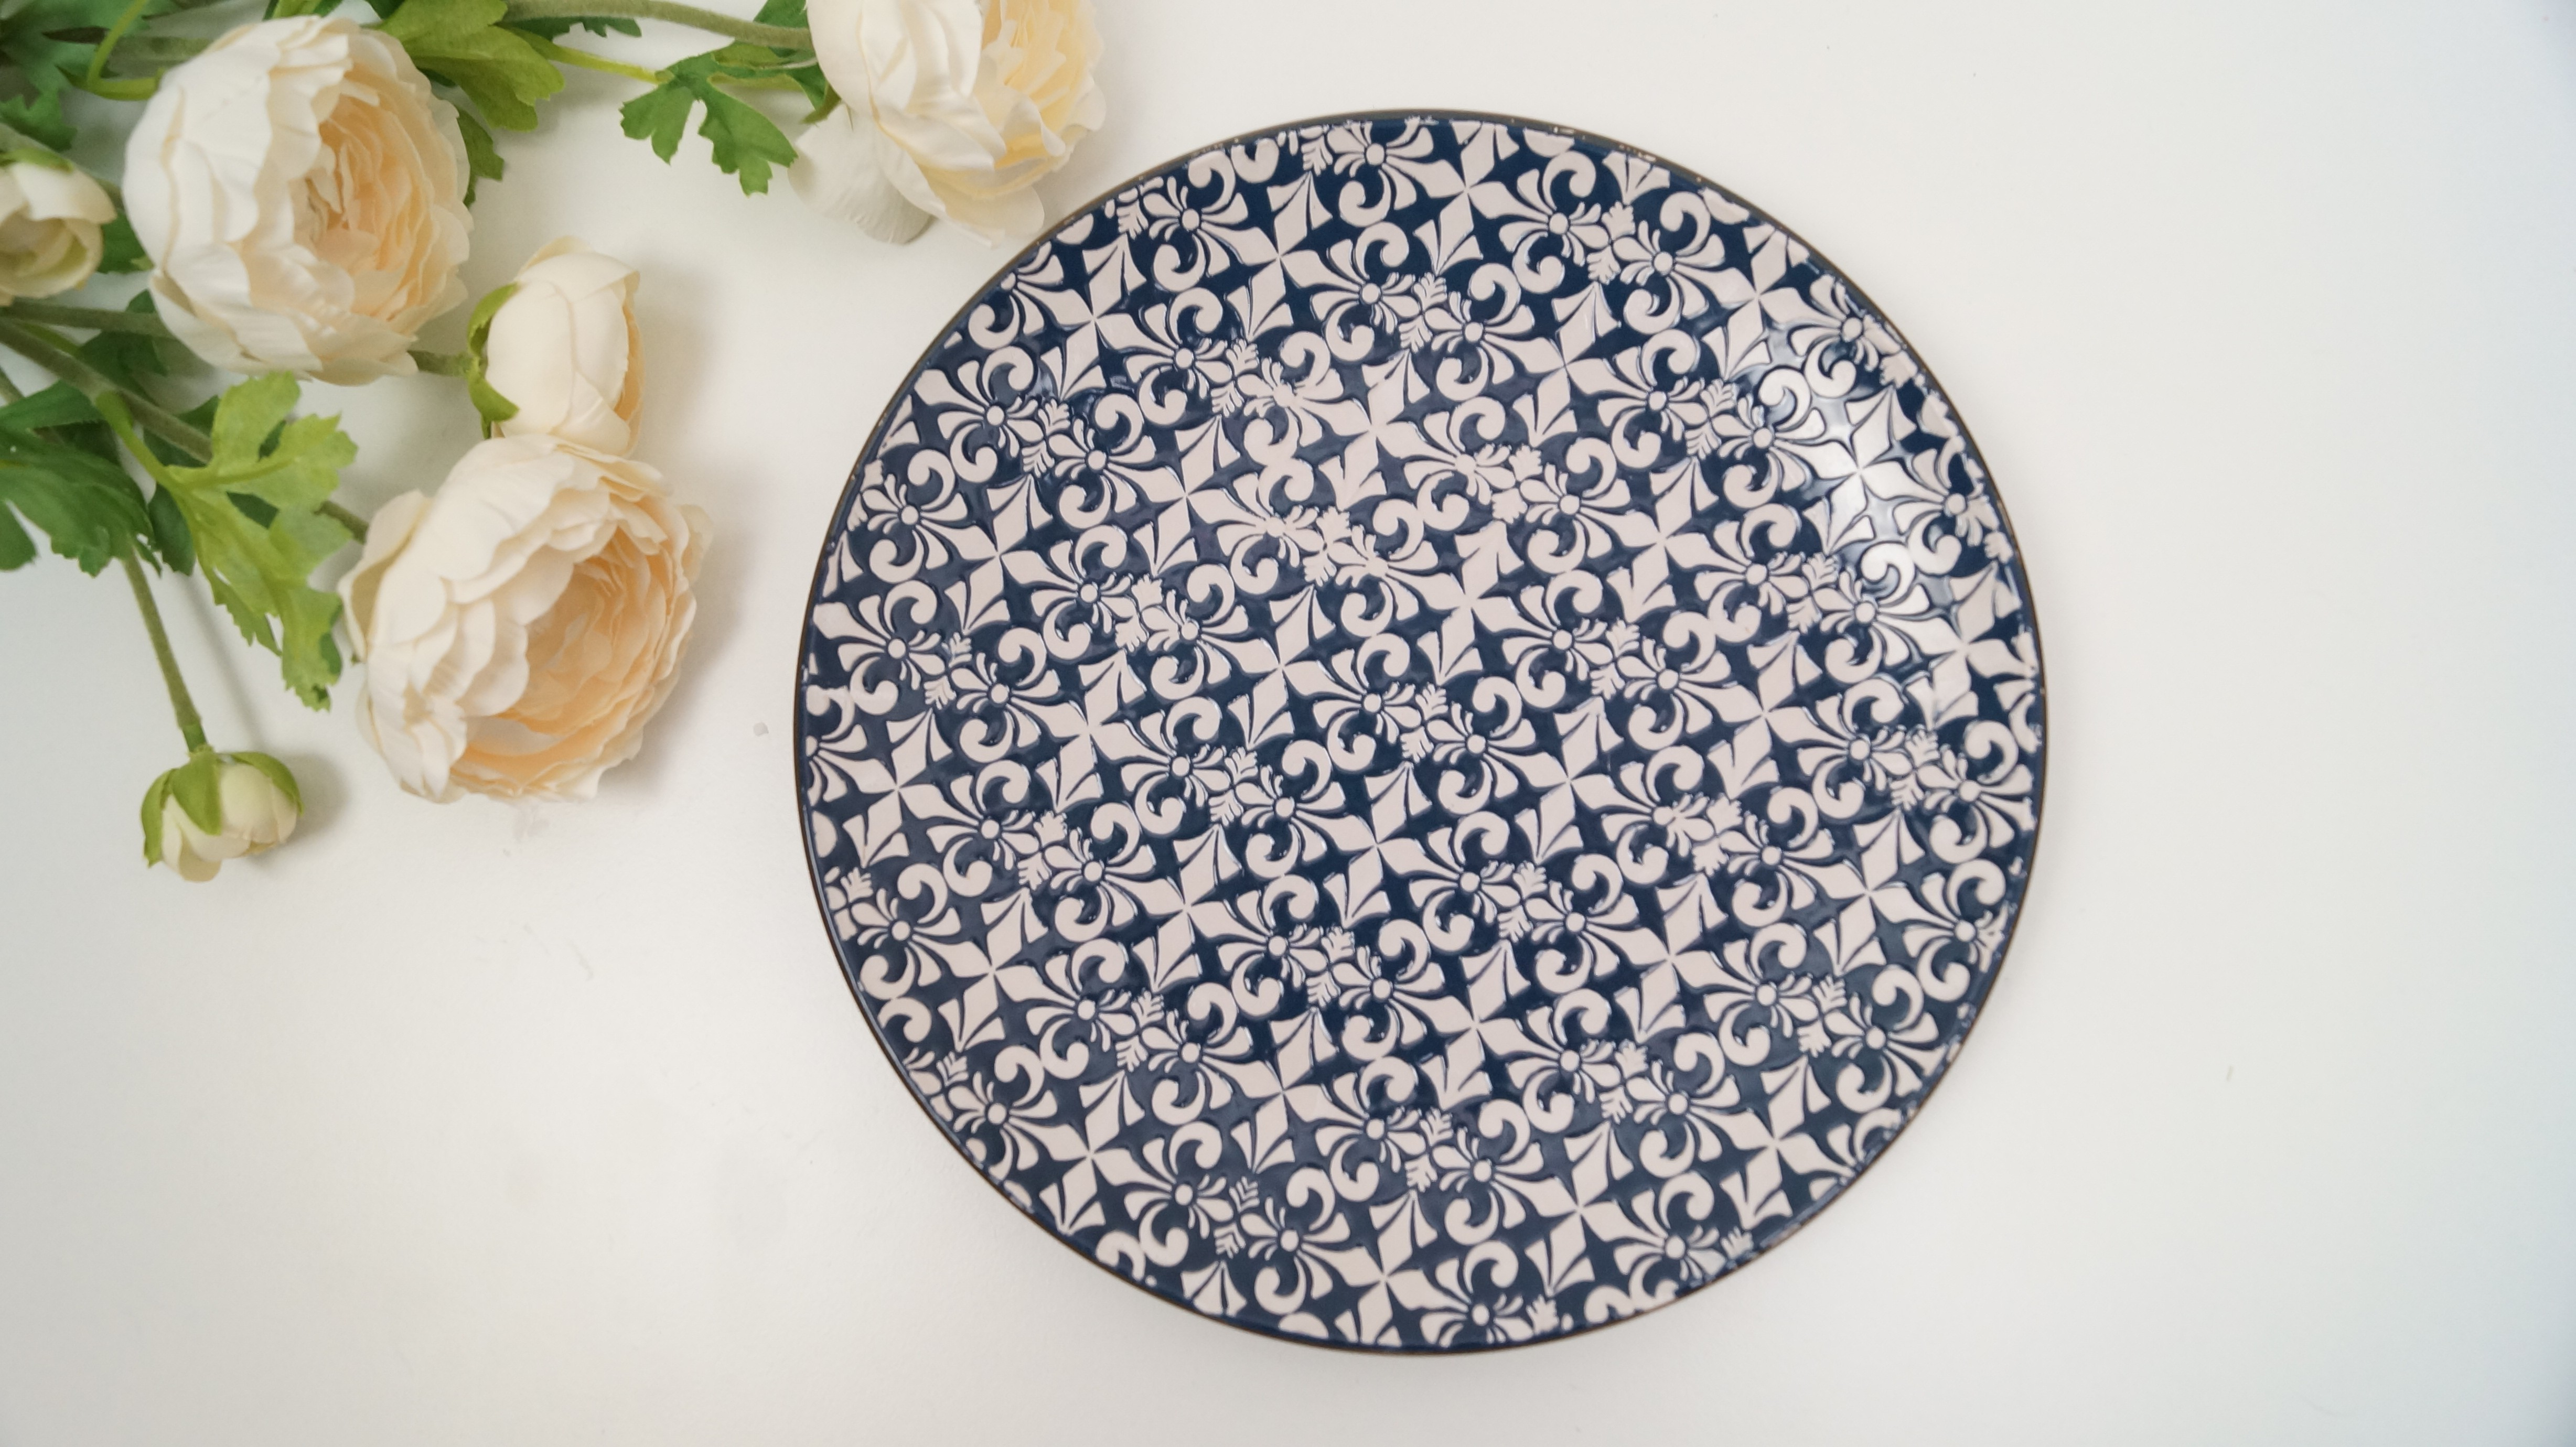 Decorative Dinner Plates Custom Stylish Mosaic Blue And White Decorative Dinner Plates Set Of 2 Review